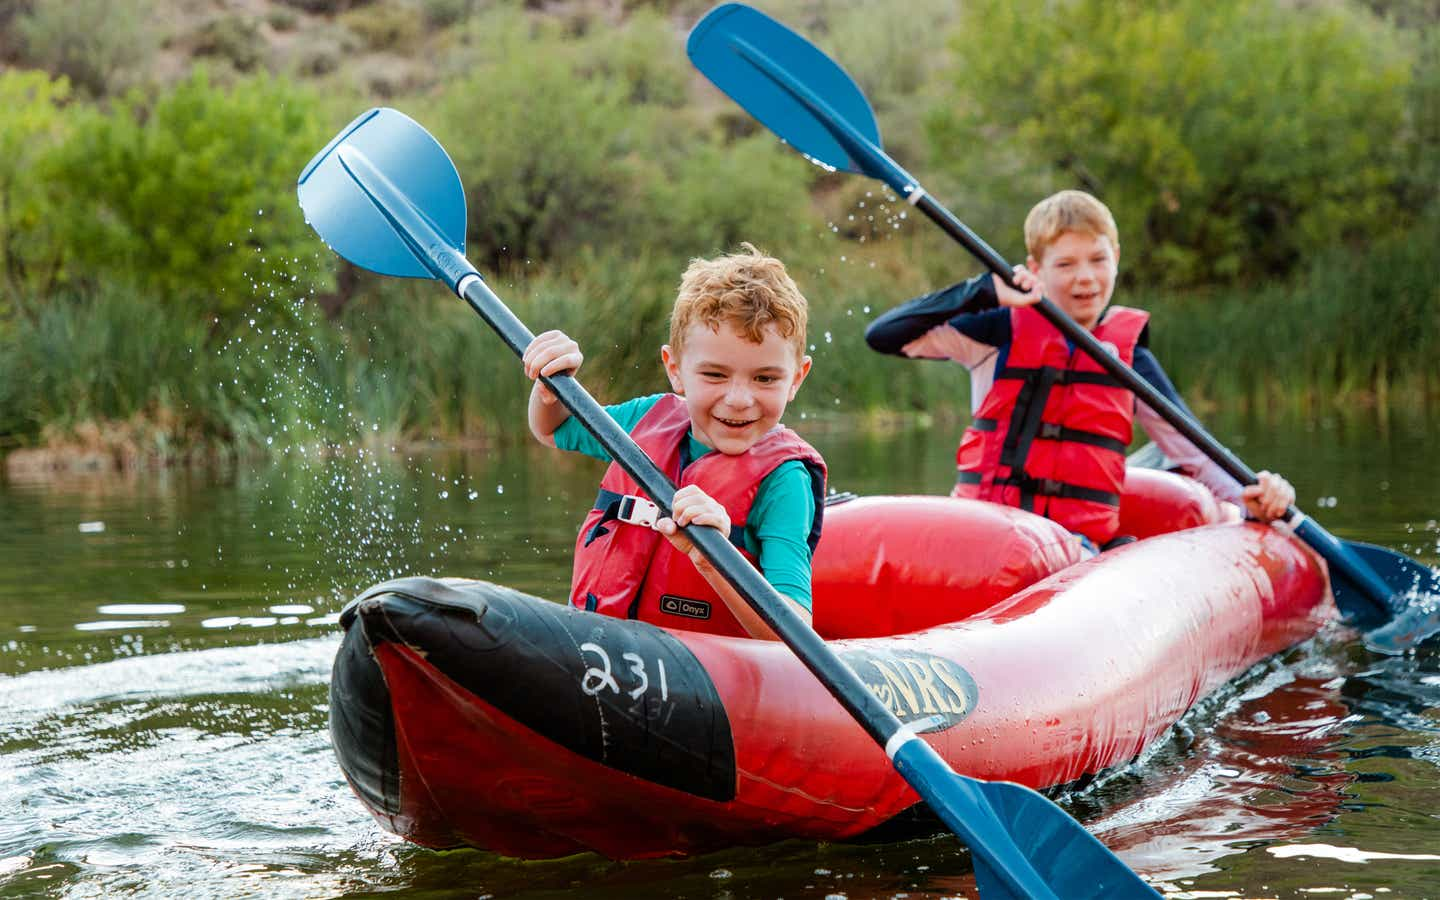 Two young children kayaking near Scottsdale Resort.